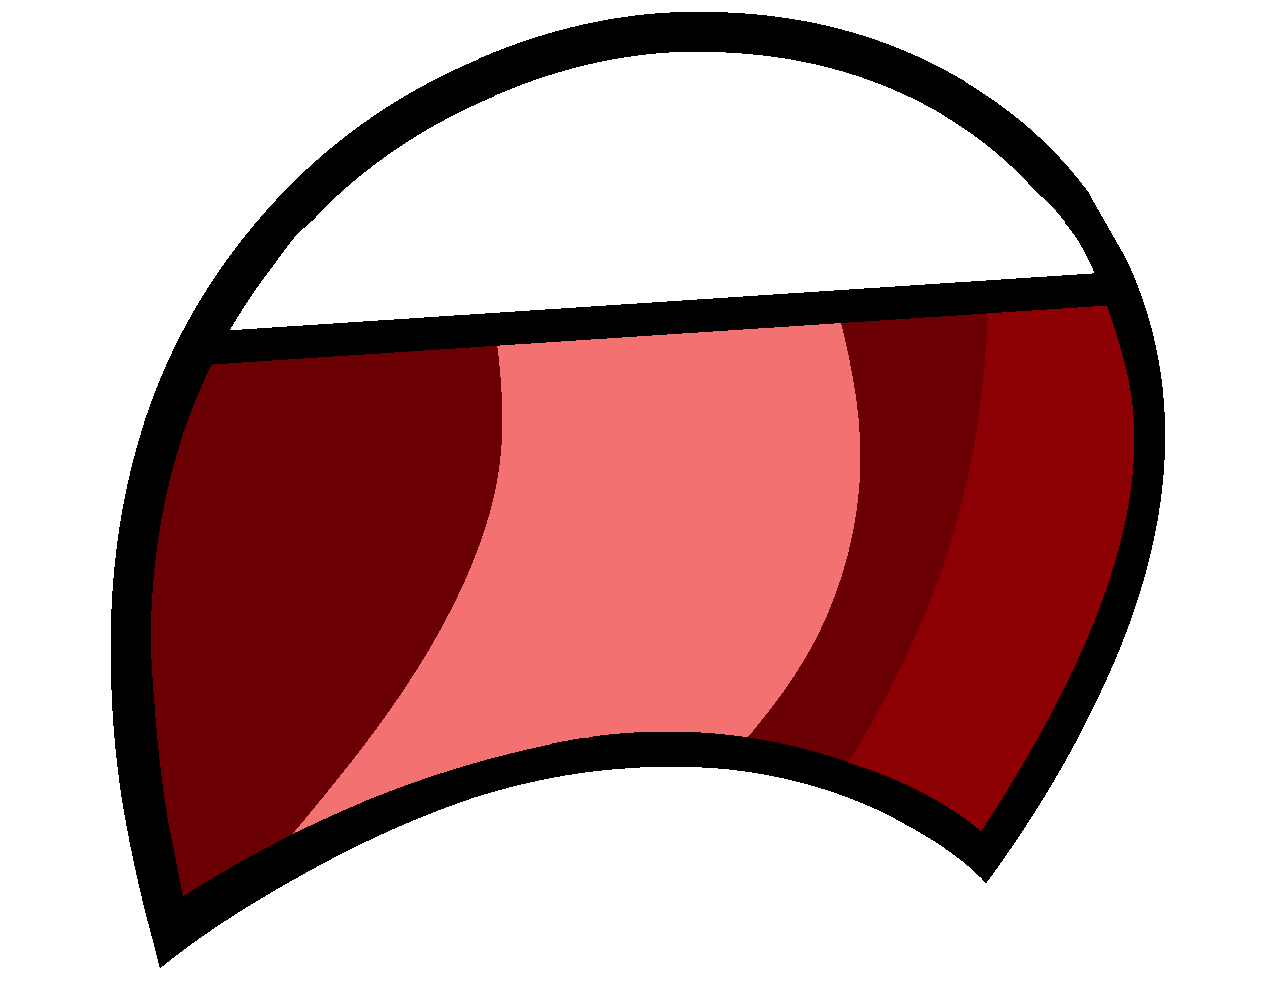 Image Frown Big Mouth Bfdi Png Object Shows